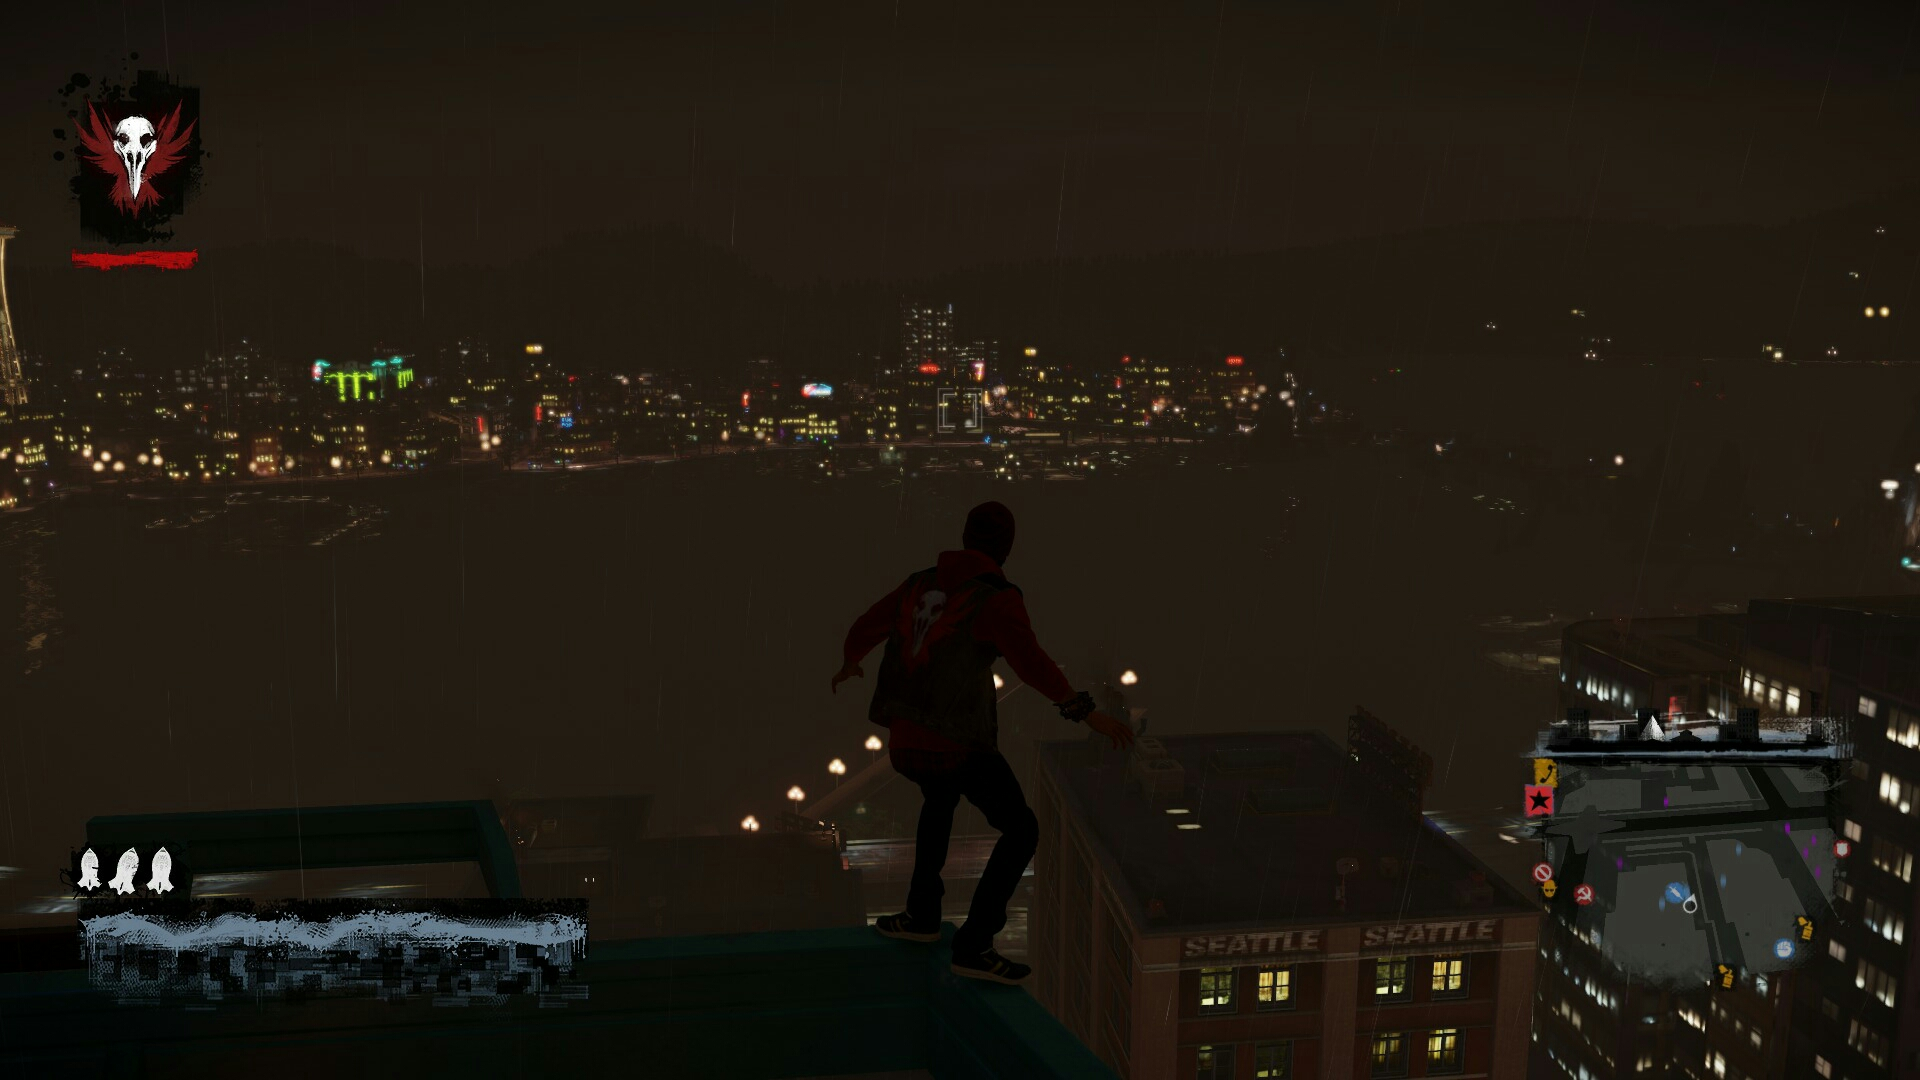 infamous-ss-night-7